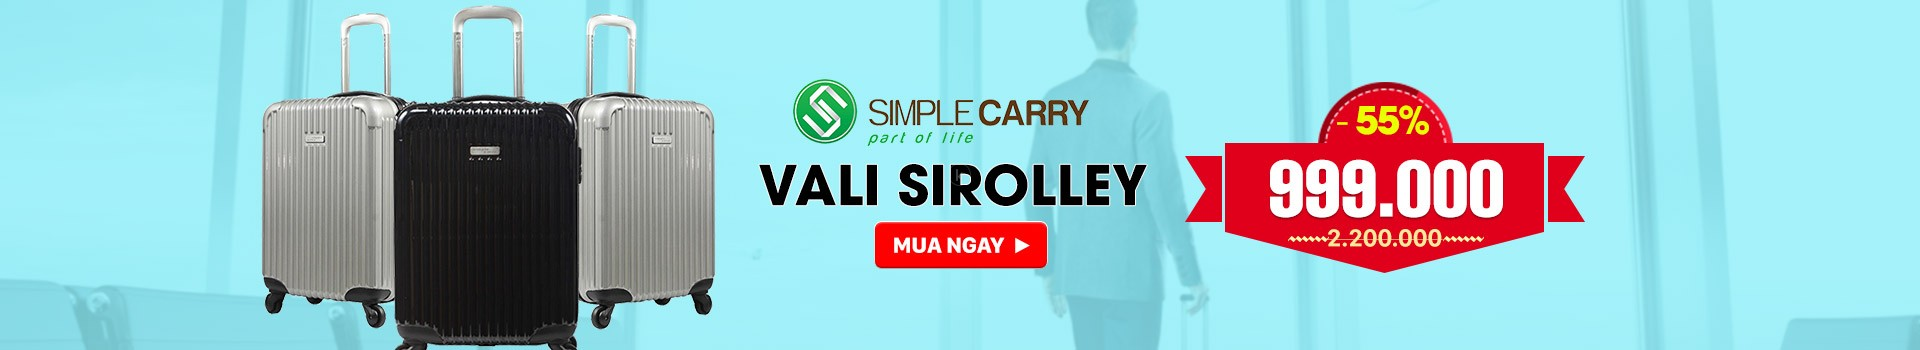 SIMPLECARRY -Vali Sirolley